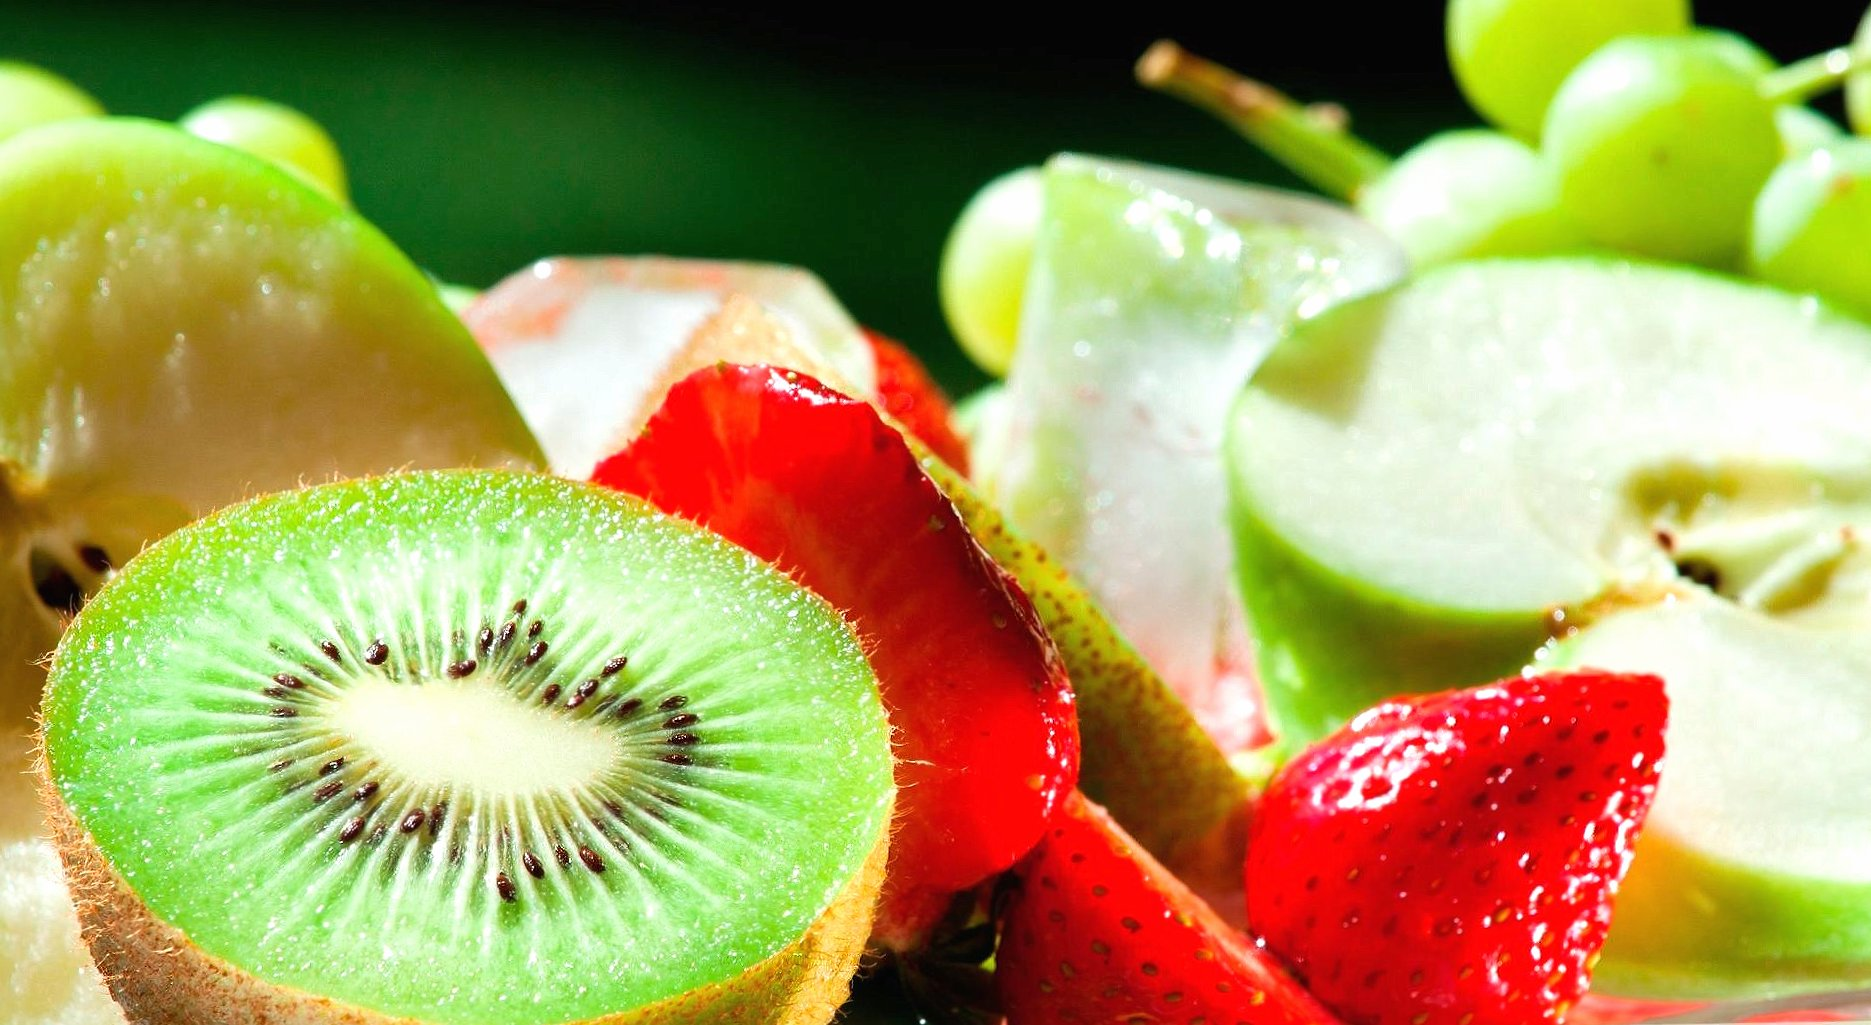 Many fruits wallpapers HD quality